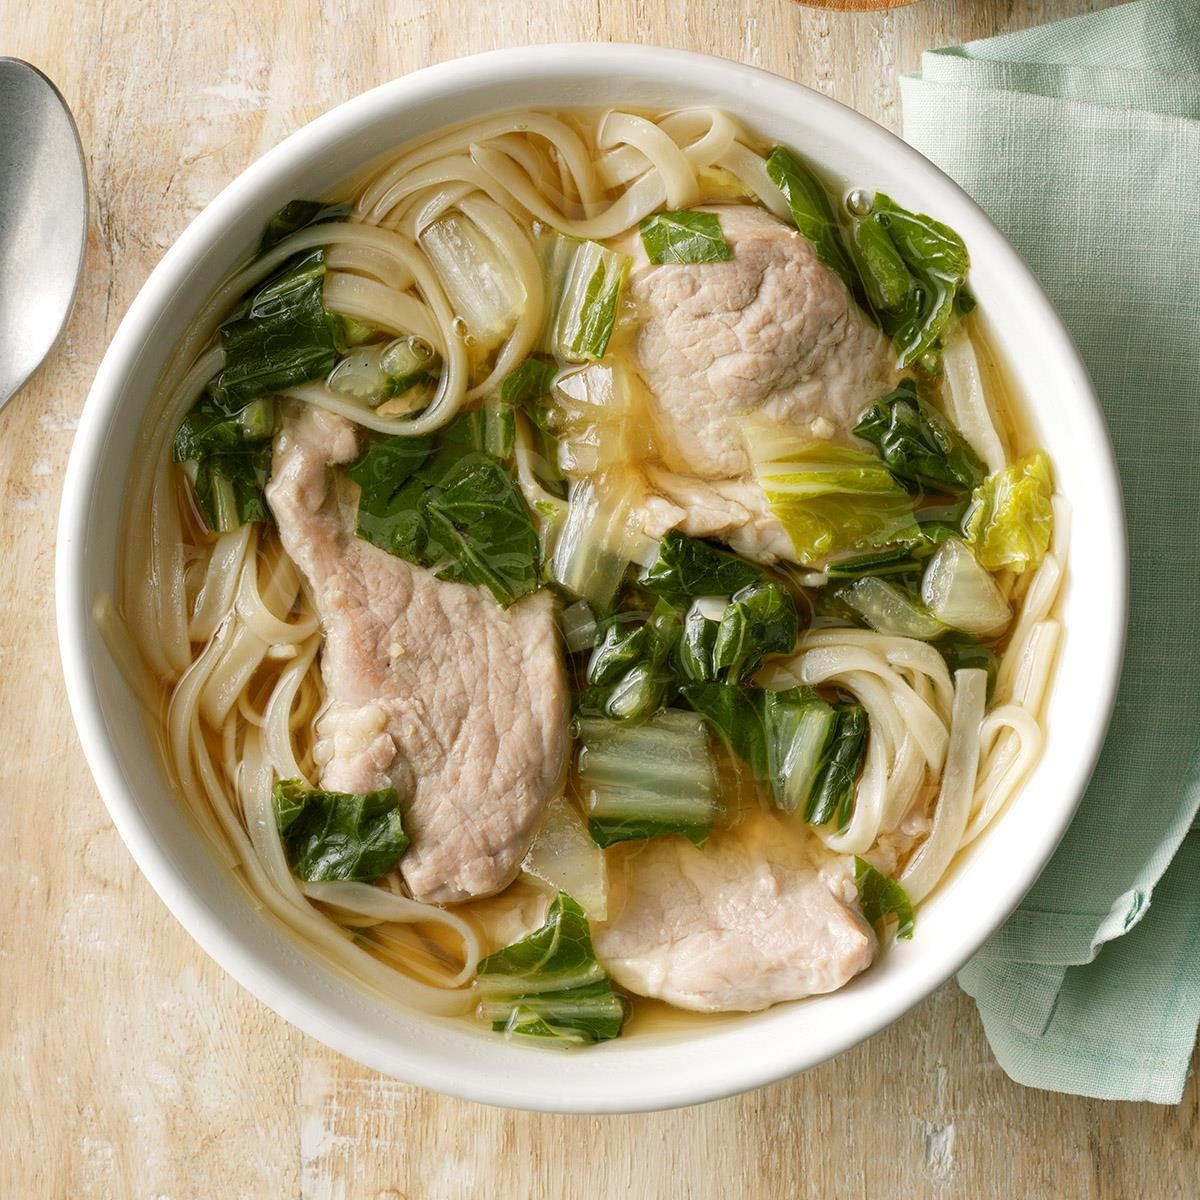 Friday: Pork & Bok Choy Udon Soup